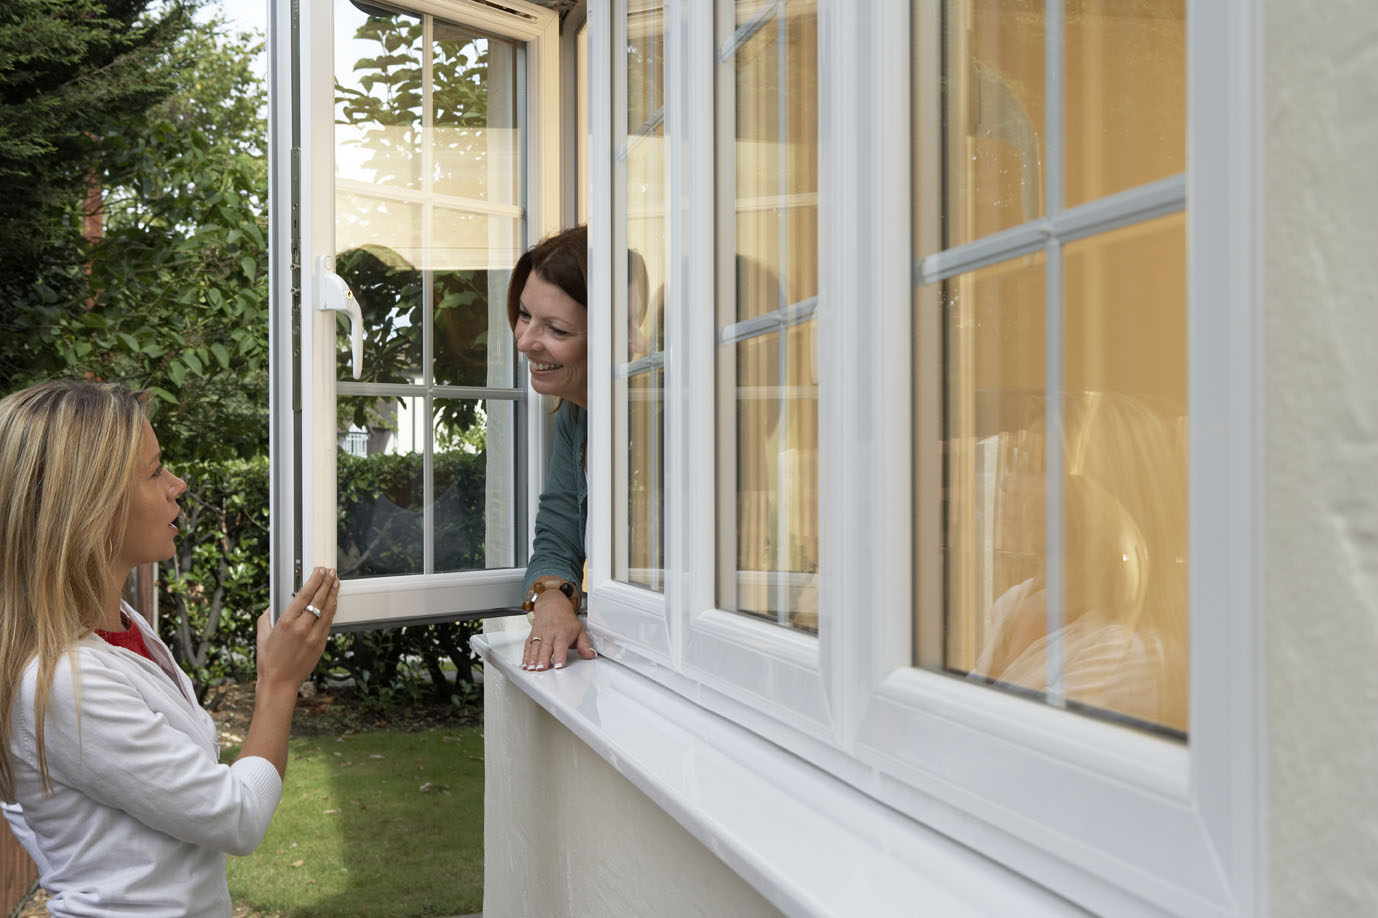 Upvc windows classic window replacements for Upvc window quote